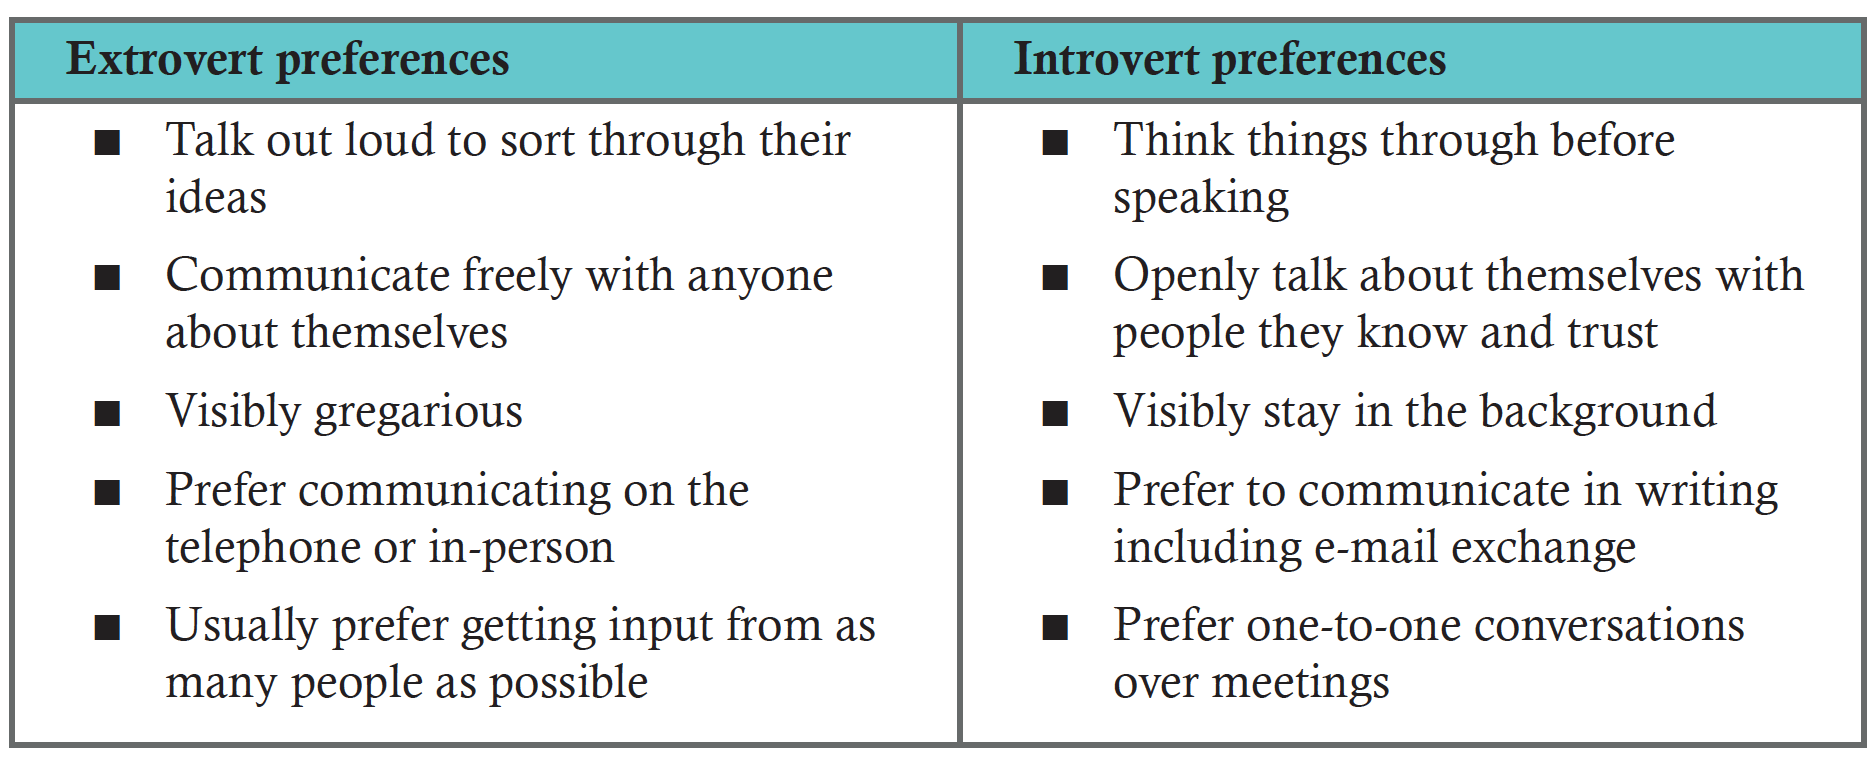 introvert vs extrovert essay The first and foremost difference between introvert and extrovert is that when a person is reserved and does not open up easily, he or she is said to be introvert on the contrary, when a person is social, talkative and makes friends easily, then his personality type is extrovert.